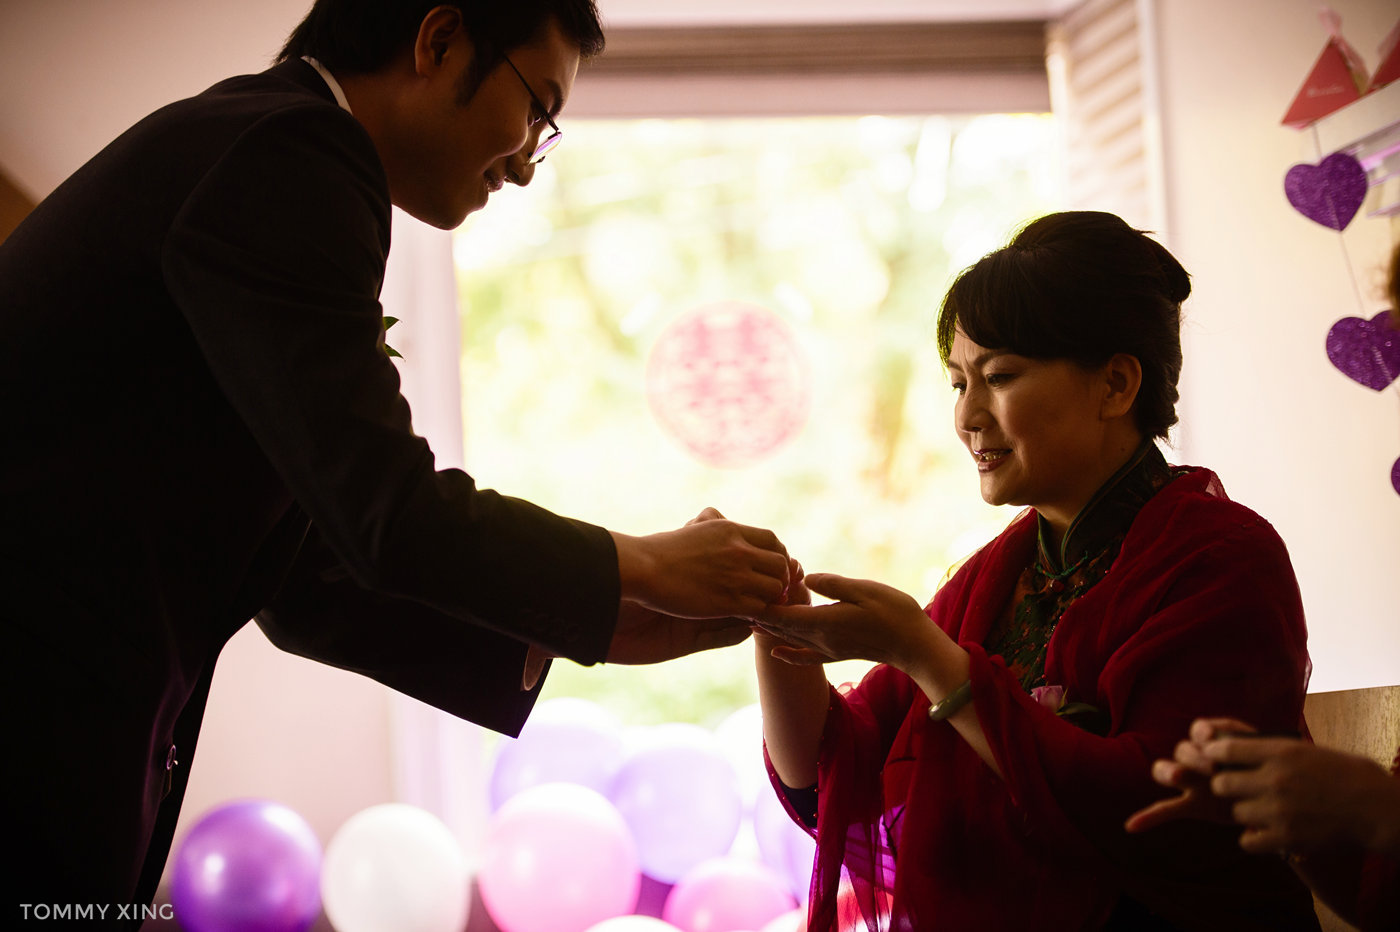 Seattle Wedding and pre wedding Los Angeles Tommy Xing Photography 西雅图洛杉矶旧金山婚礼婚纱照摄影师 022.jpg